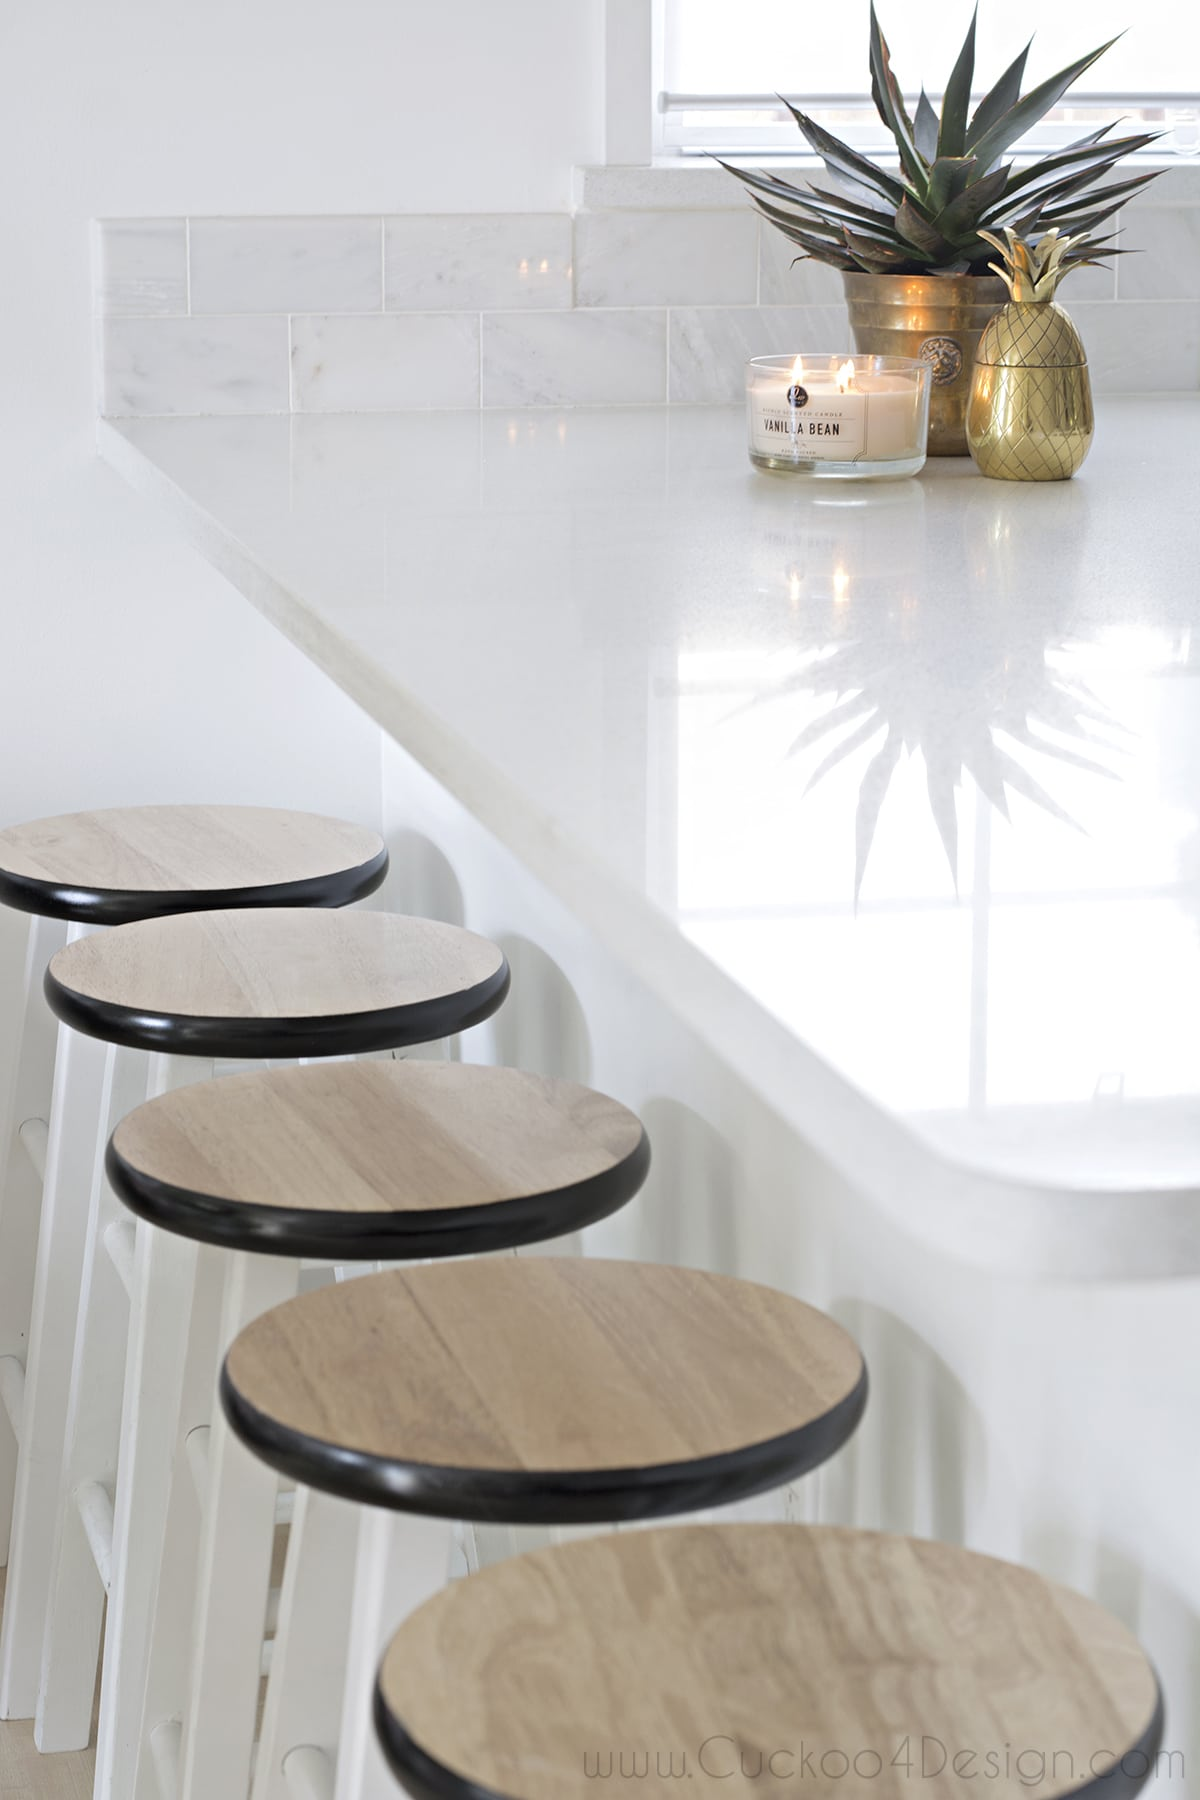 black_white_and_gold_kitchen_cuckoo4design_7